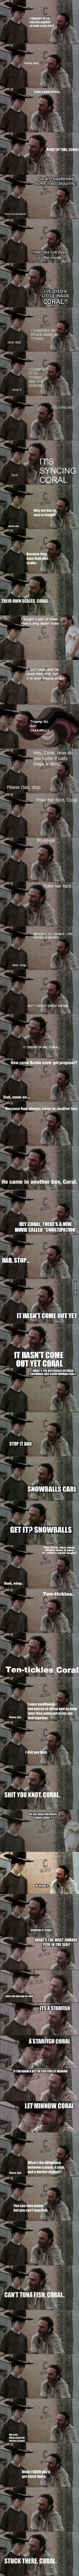 15 of the Best or maybe the Most Terrible Rick Grimes Dad Jokes Ever